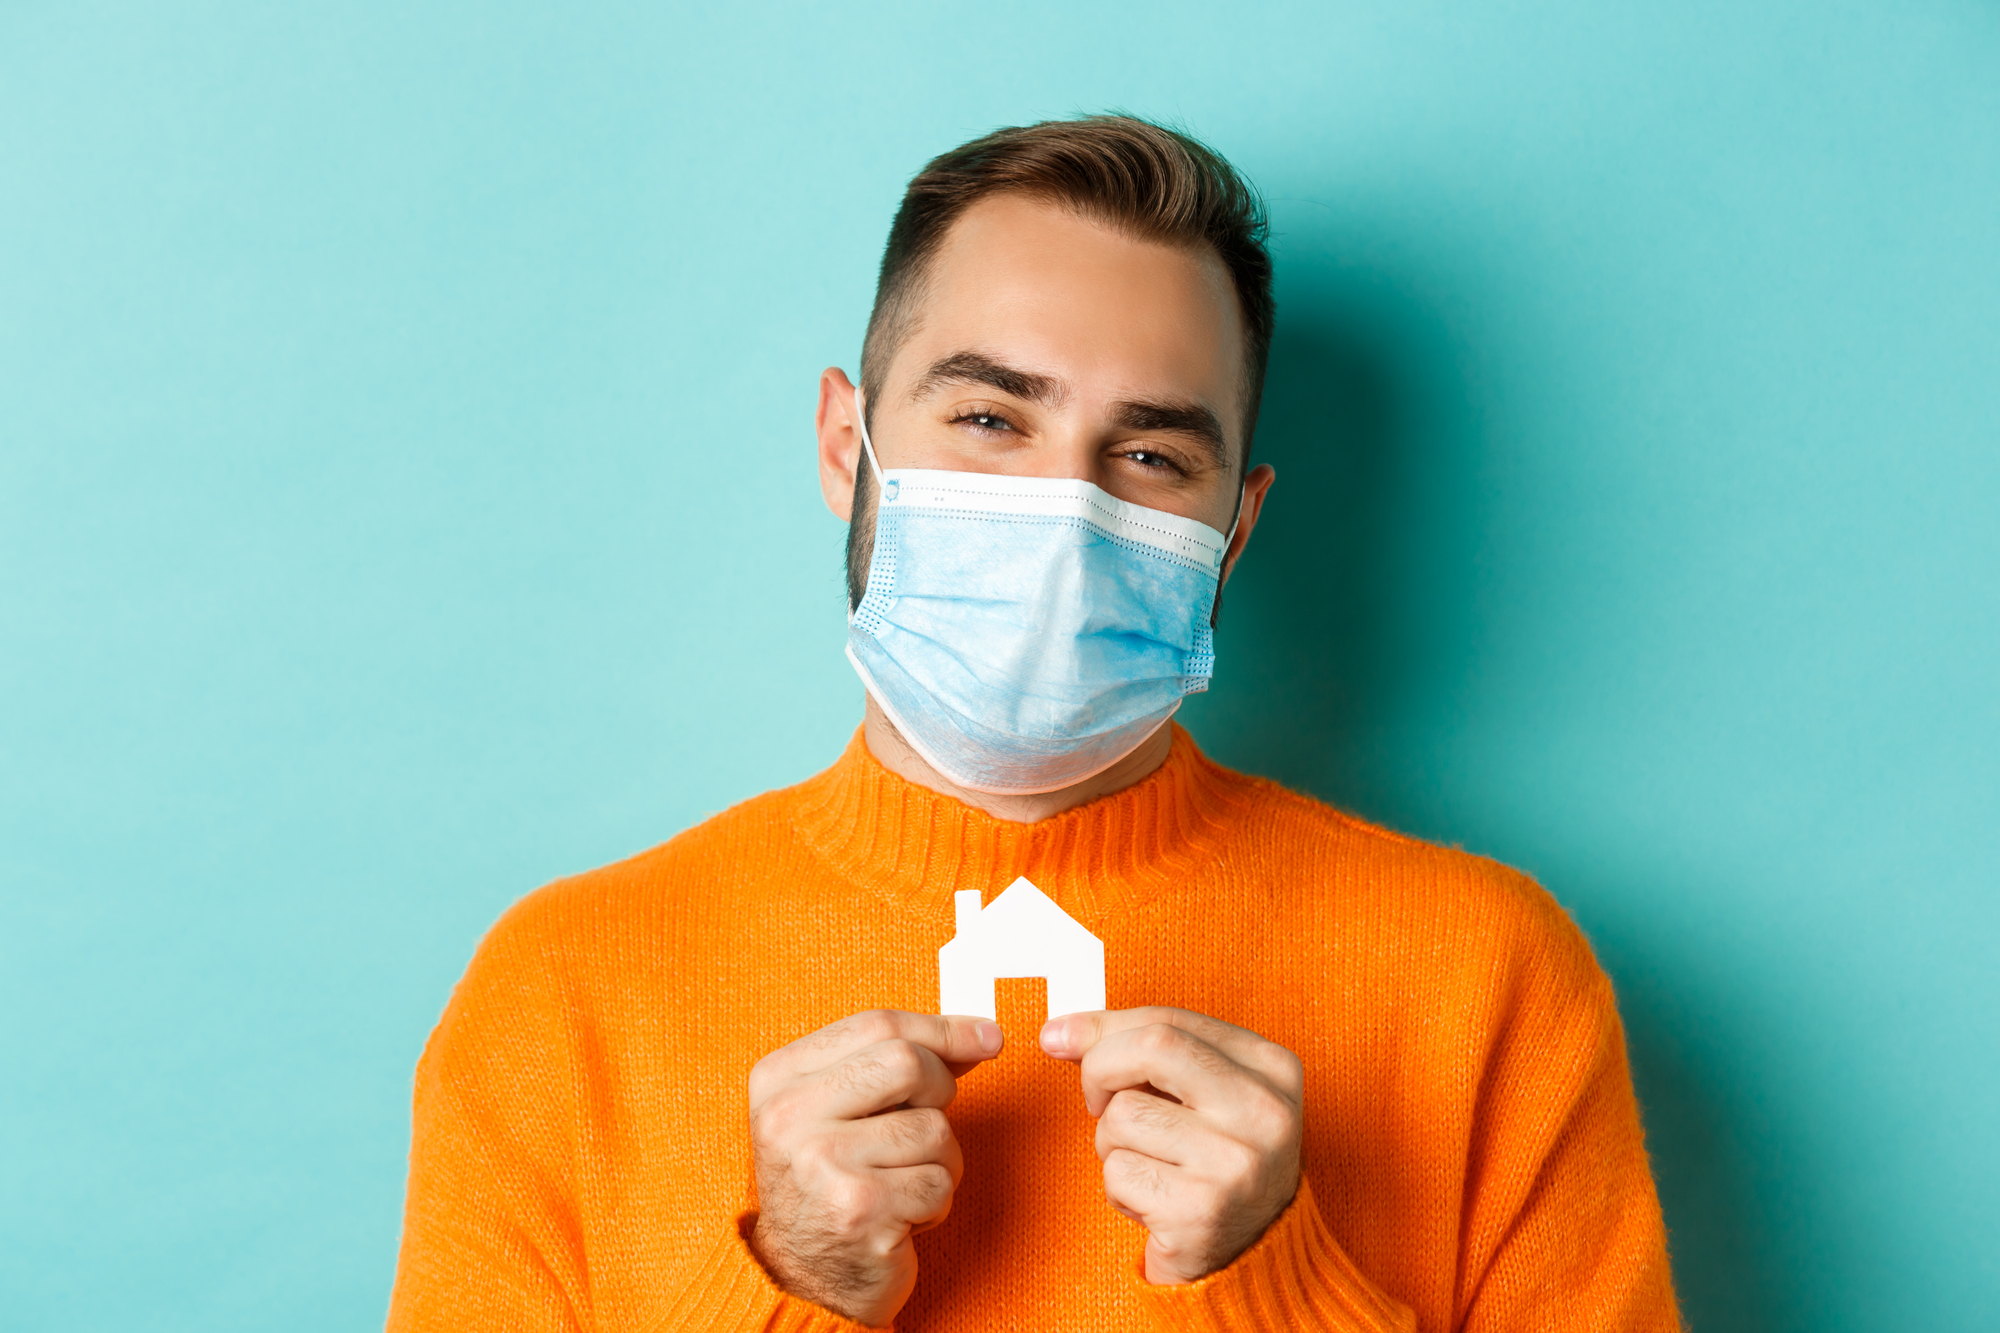 Real estate and coronavirus pandemic. Close-up of adult man in medical mask holding small paper house maket and smiling, searching for apartment